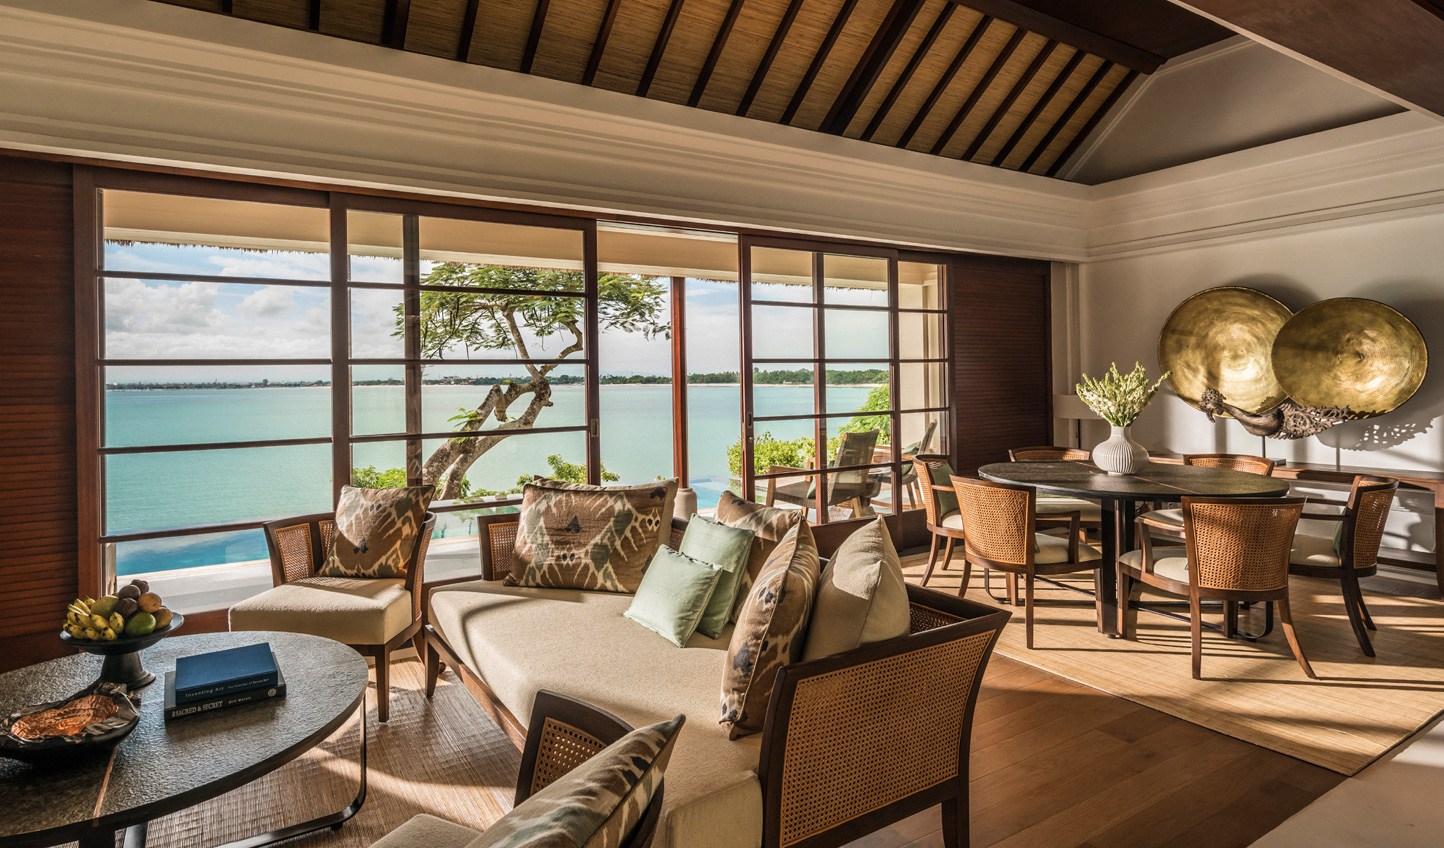 Make yourself at home in the stunning villas